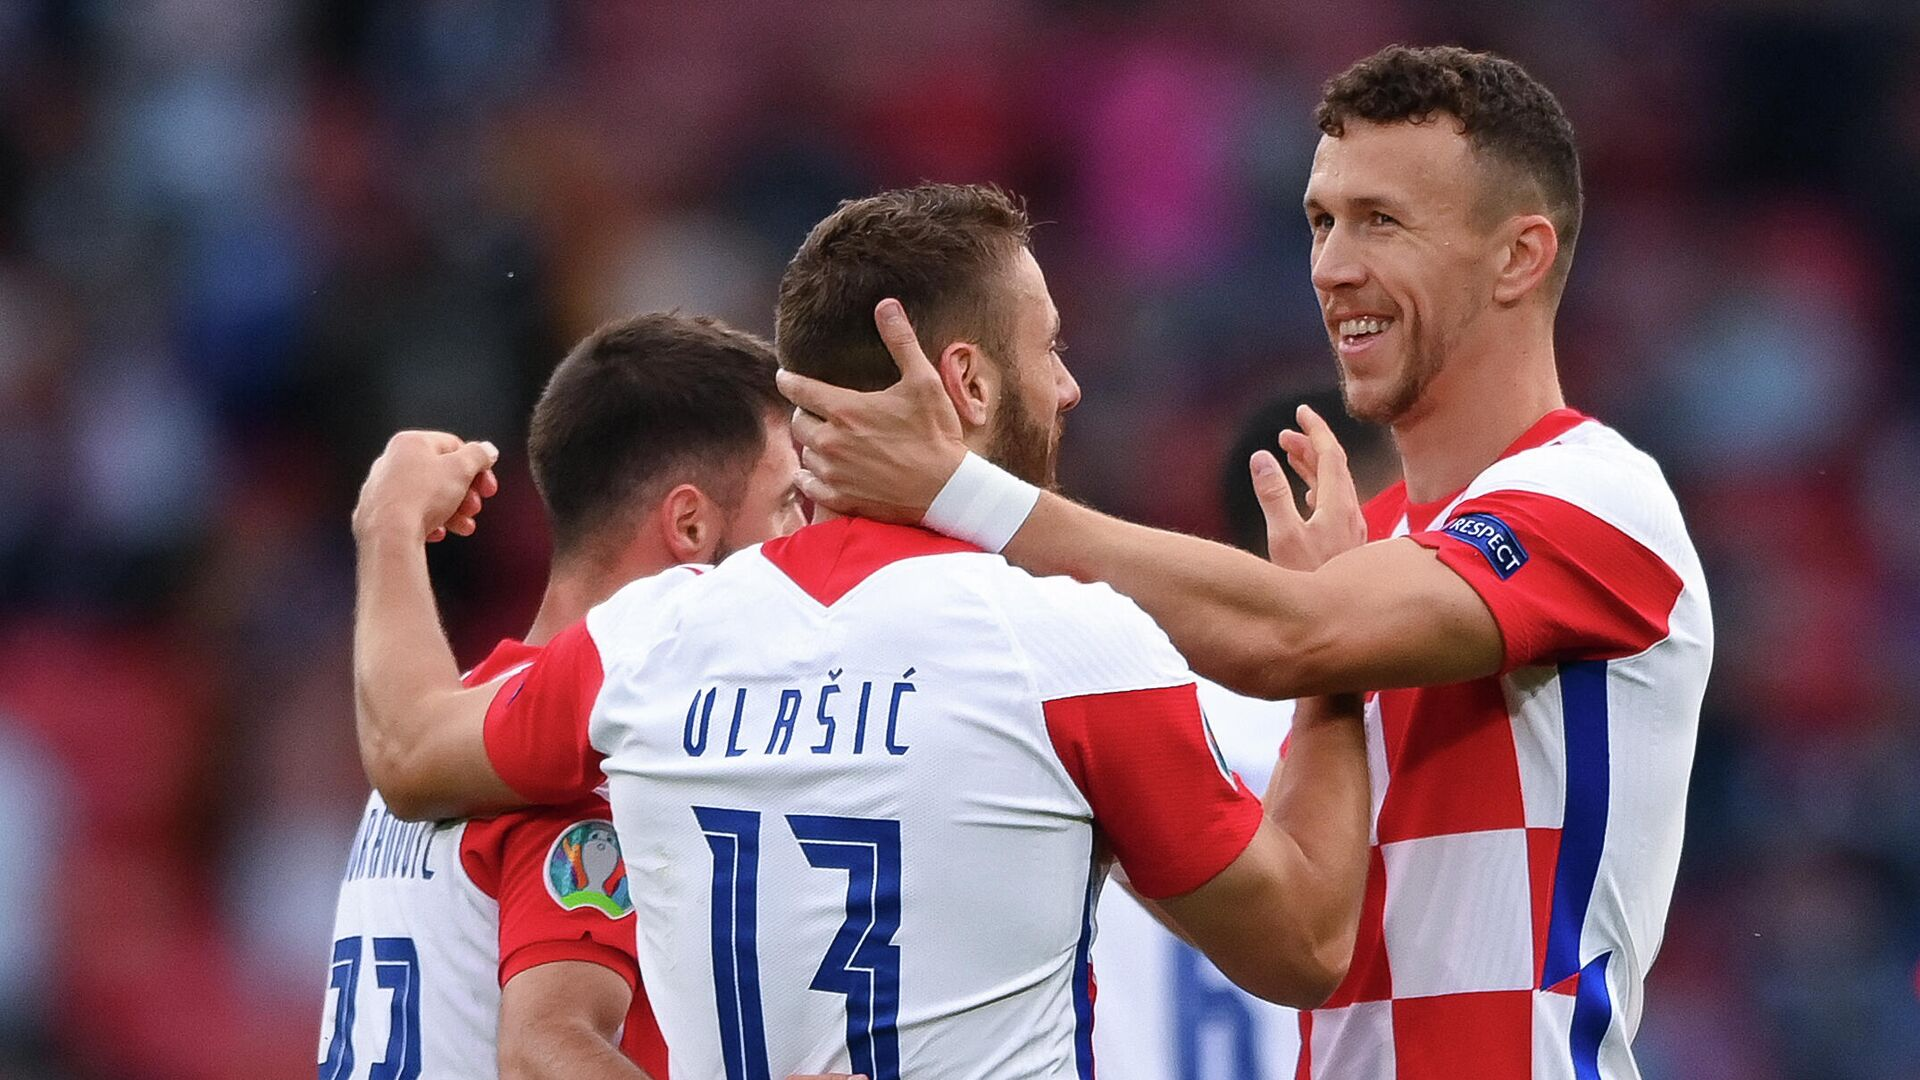 Croatia's midfielder Nikola Vlasic (C) celebrates with teammates after scoring the first goal during the UEFA EURO 2020 Group D football match between Croatia and Scotland at Hampden Park in Glasgow on June 22, 2021. (Photo by Stu Forster / POOL / AFP) - РИА Новости, 1920, 22.06.2021